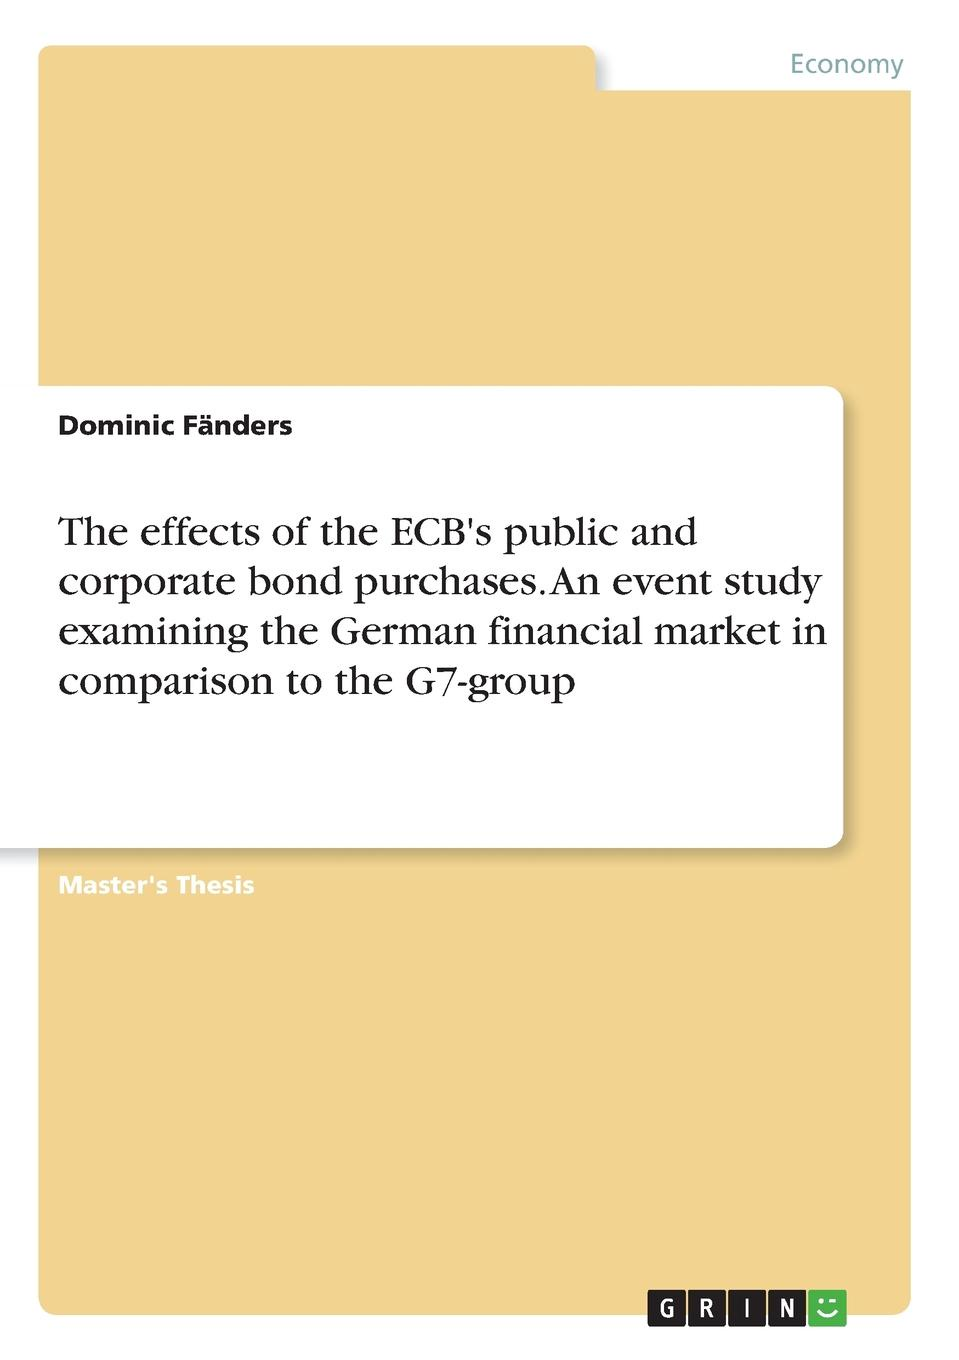 Dominic Fänders The effects of the ECB.s public and corporate bond purchases. An event study examining the German financial market in comparison to the G7-group patrick brown j an introduction to the bond markets